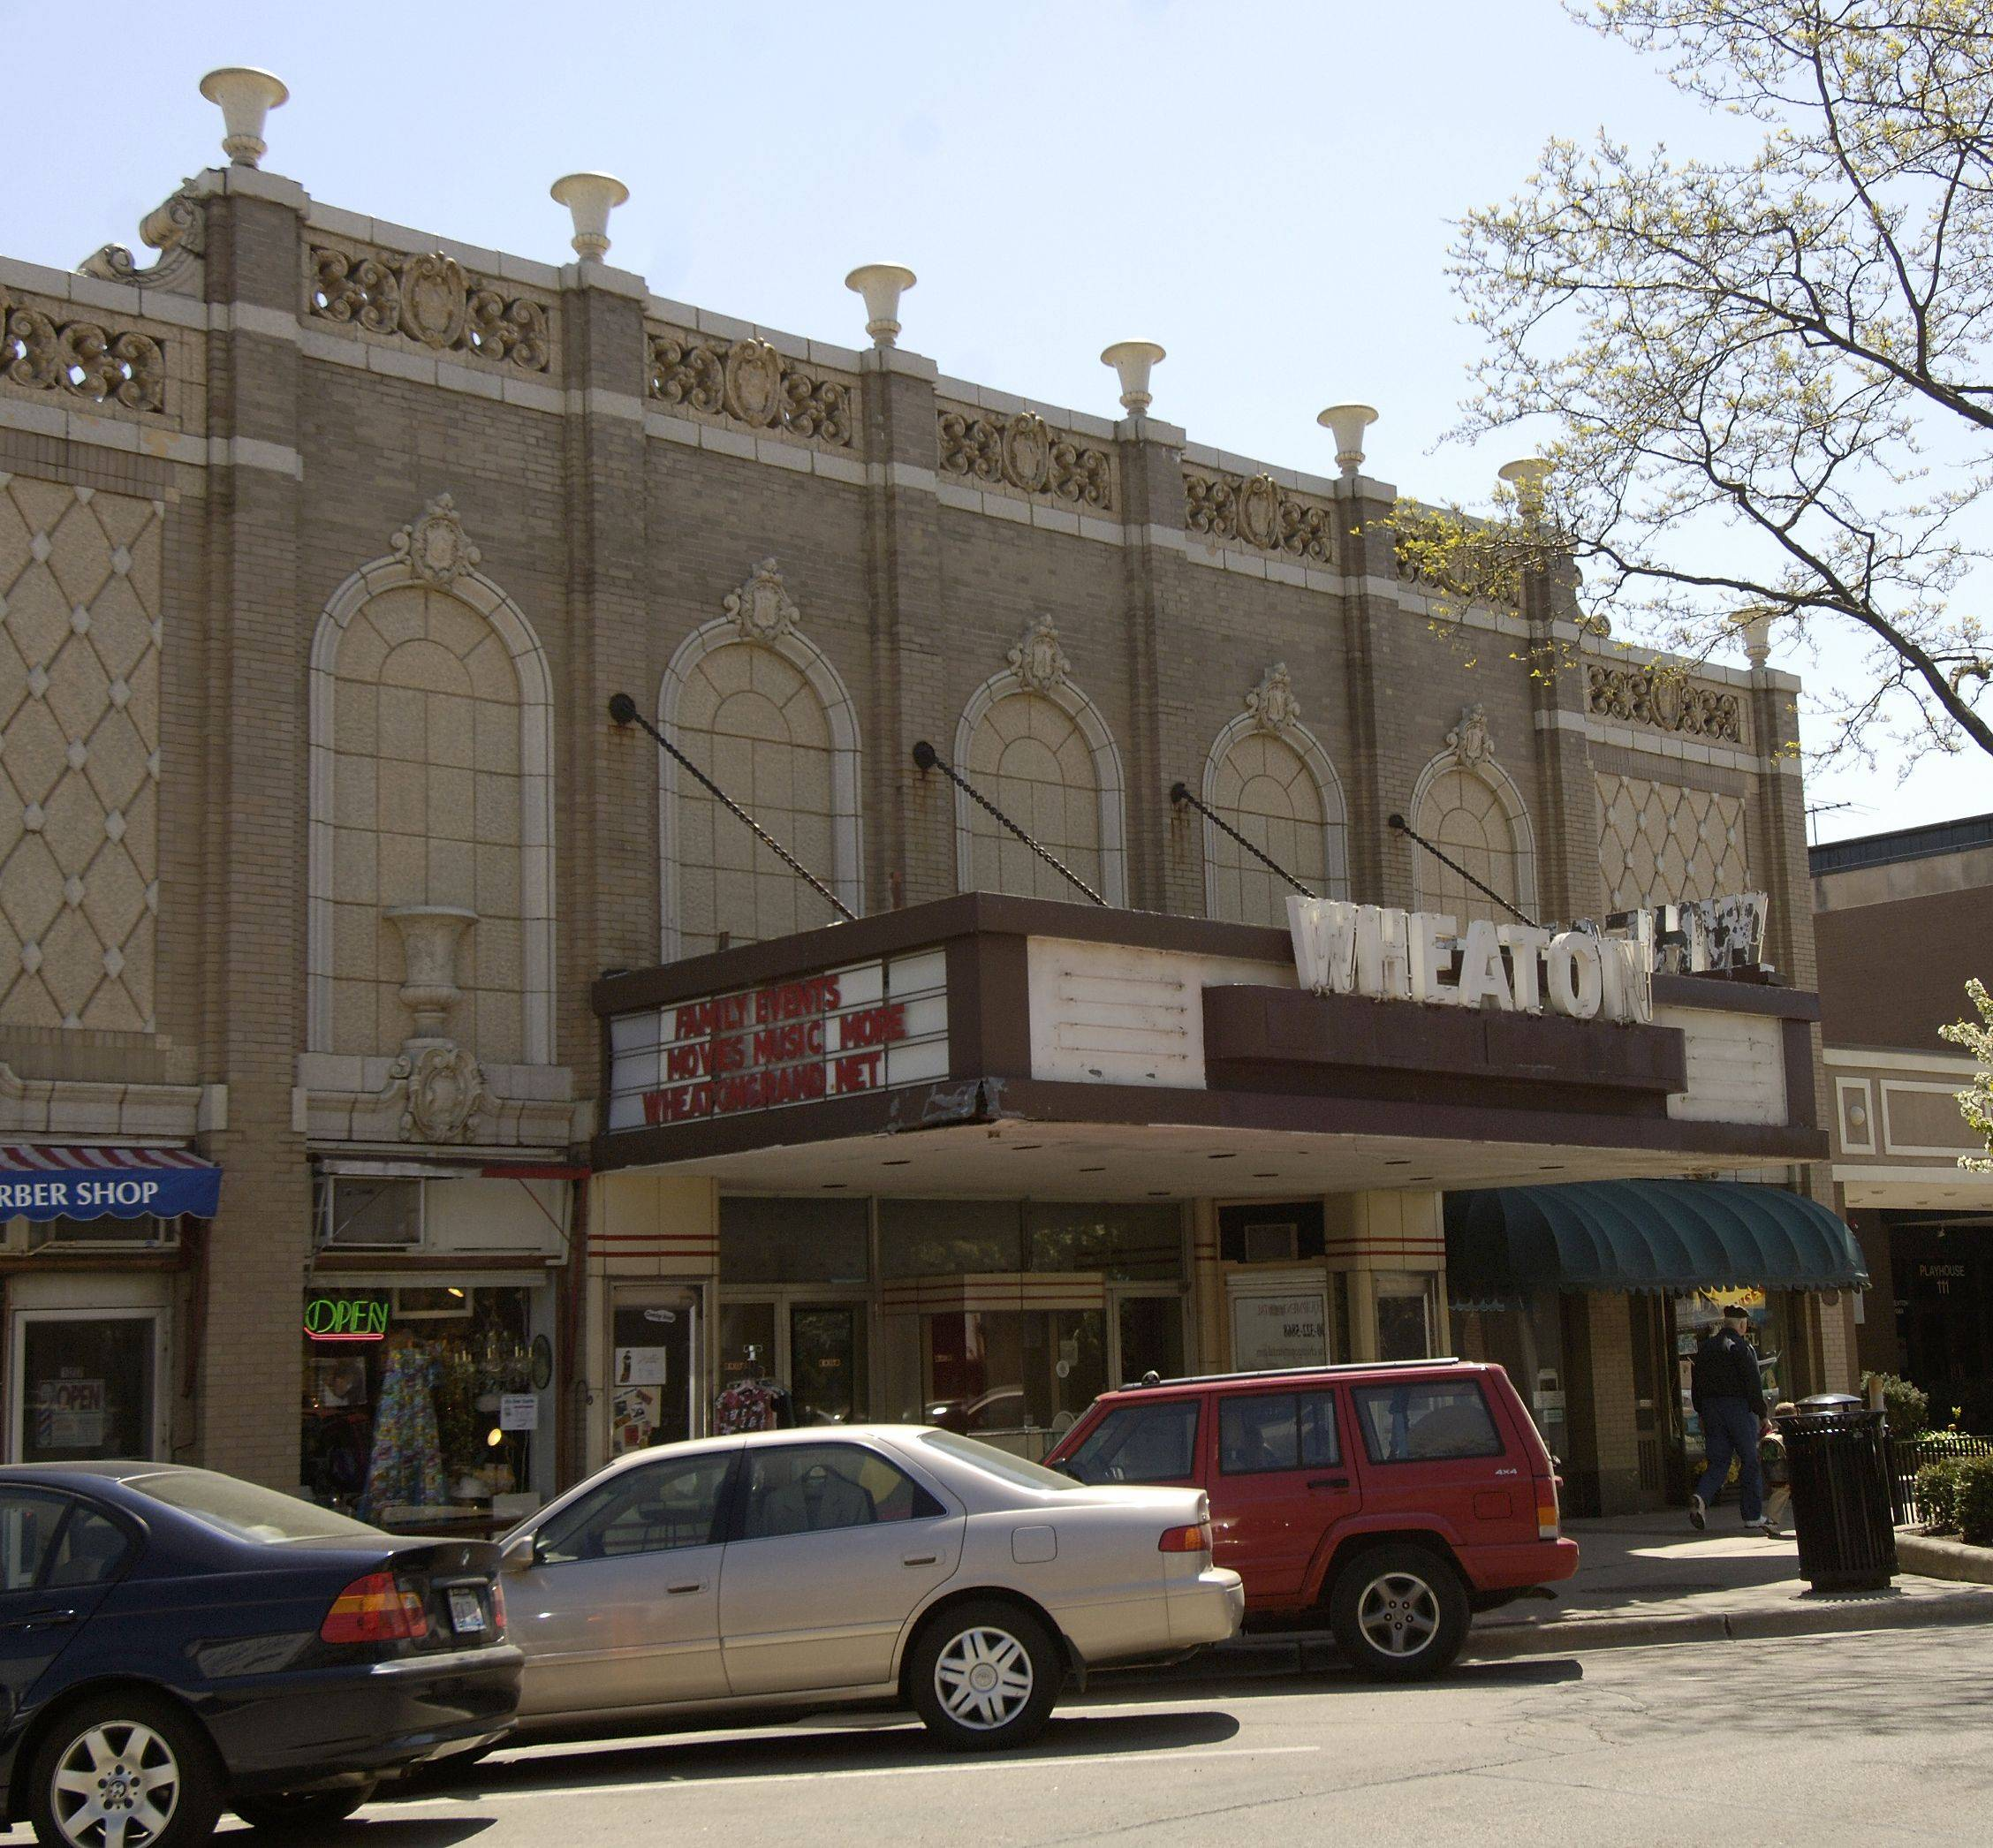 The Wheaton Grand Theater in downtown Wheaton has seen a slight increase in interest ever since an advisory referendum went down to defeat on election night.